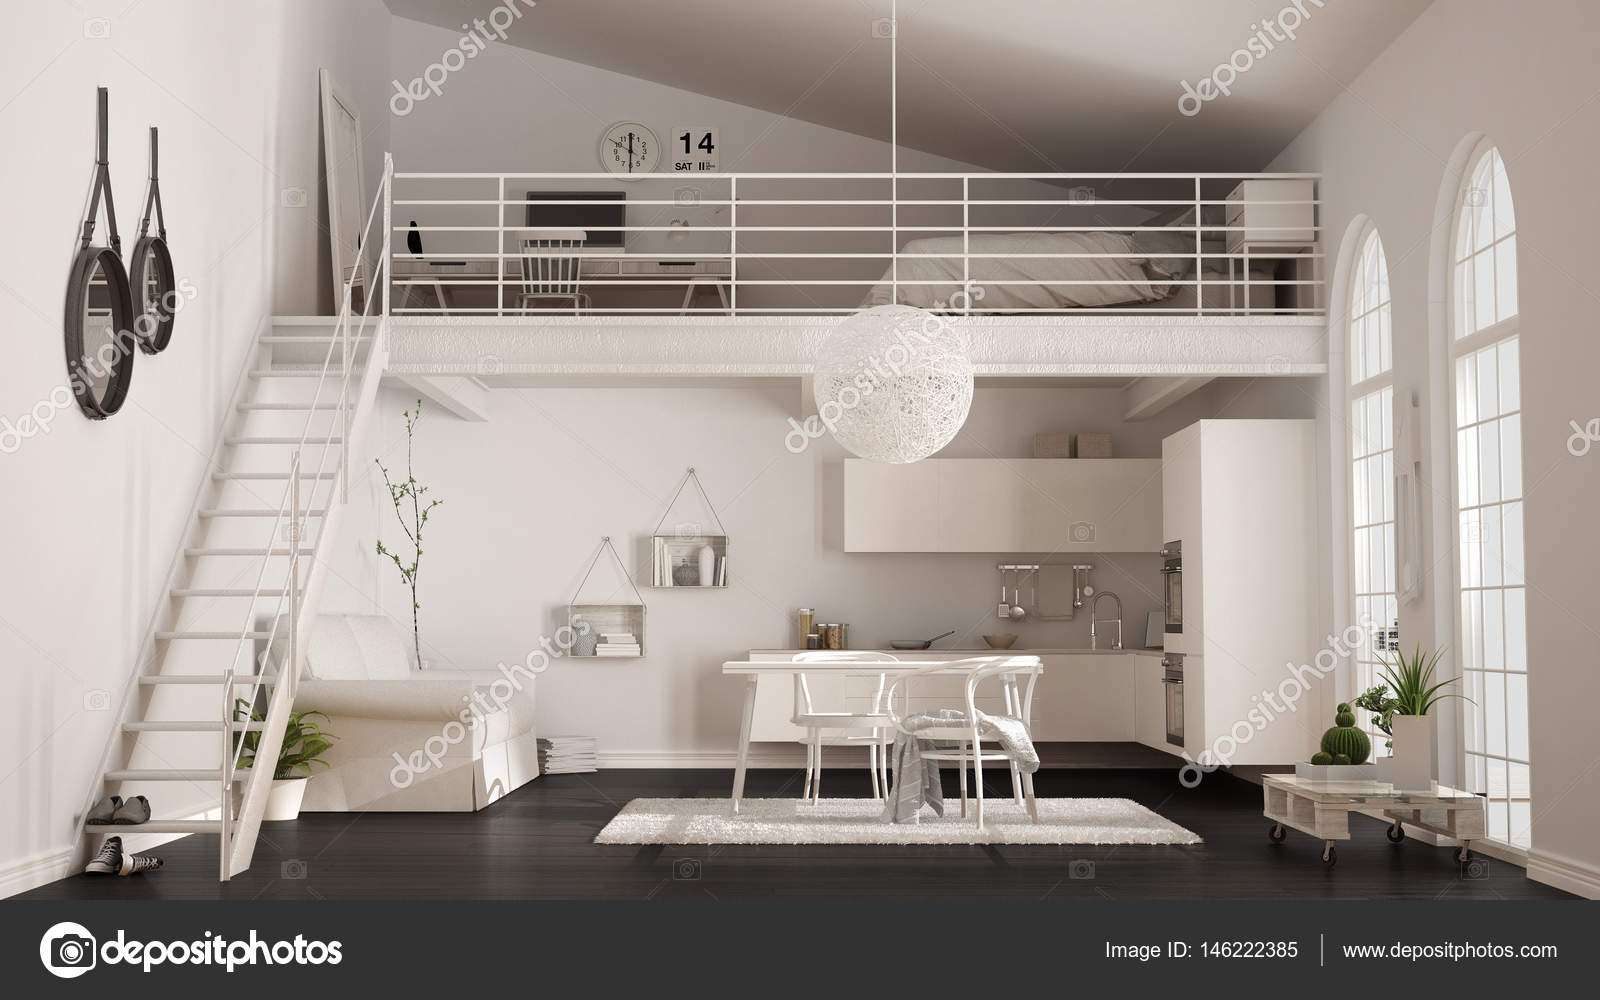 skandinavische minimalistische loft ein zimmer wohnung mit wei en kitc stockfoto archiviz. Black Bedroom Furniture Sets. Home Design Ideas